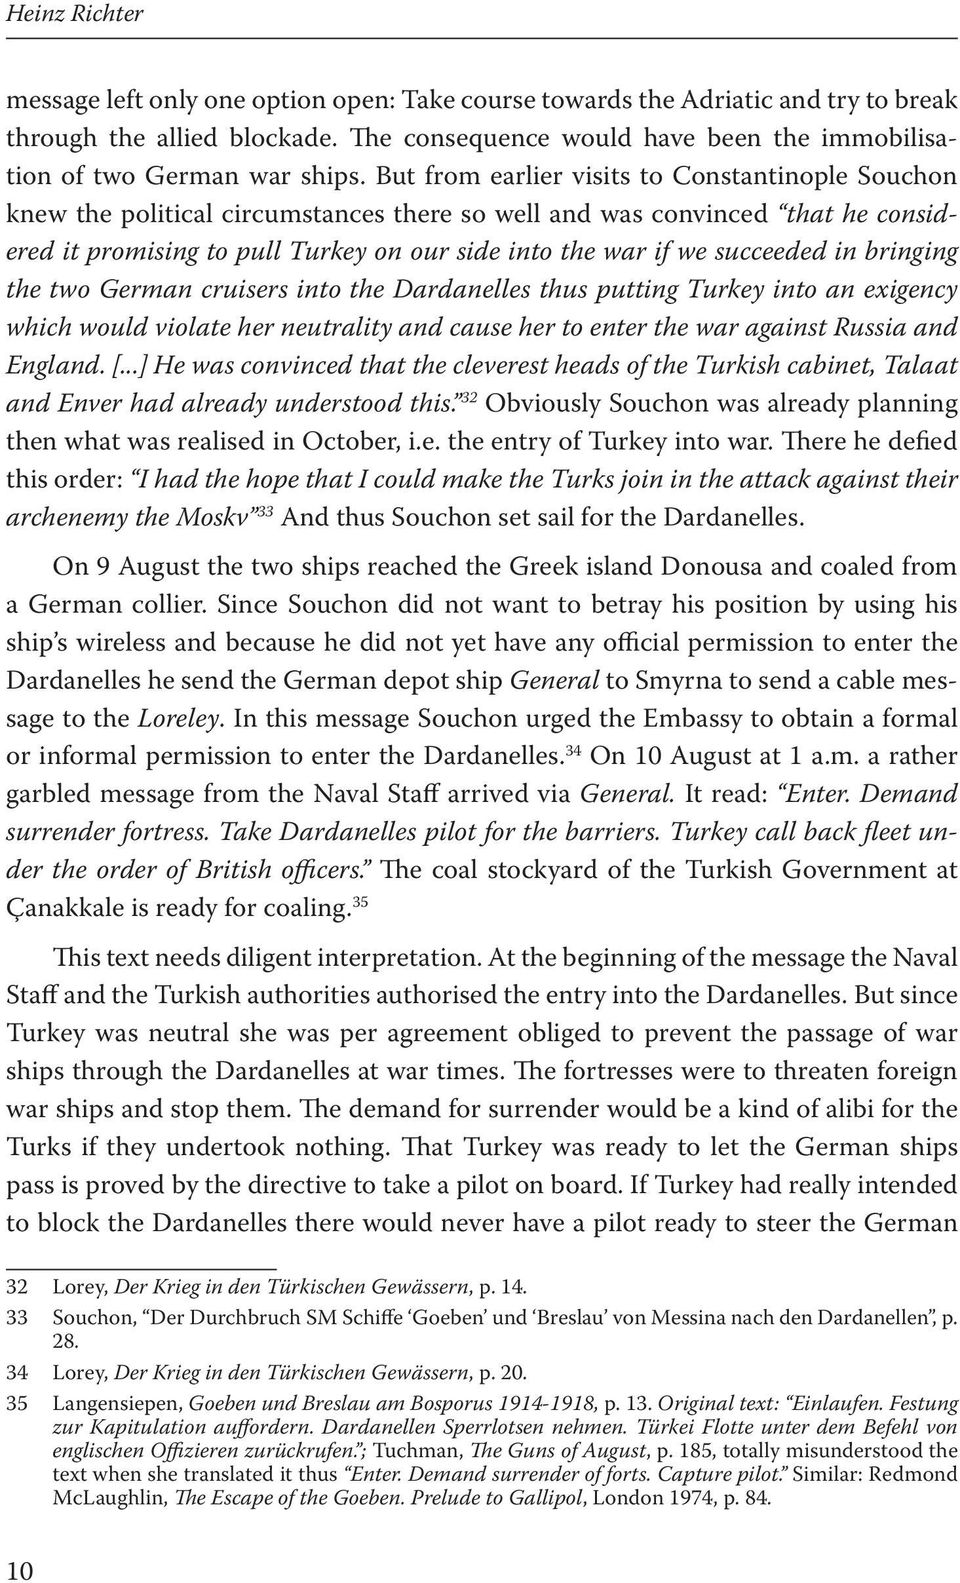 But from earlier visits to Constantinople Souchon knew the political circumstances there so well and was convinced that he considered it promising to pull Turkey on our side into the war if we